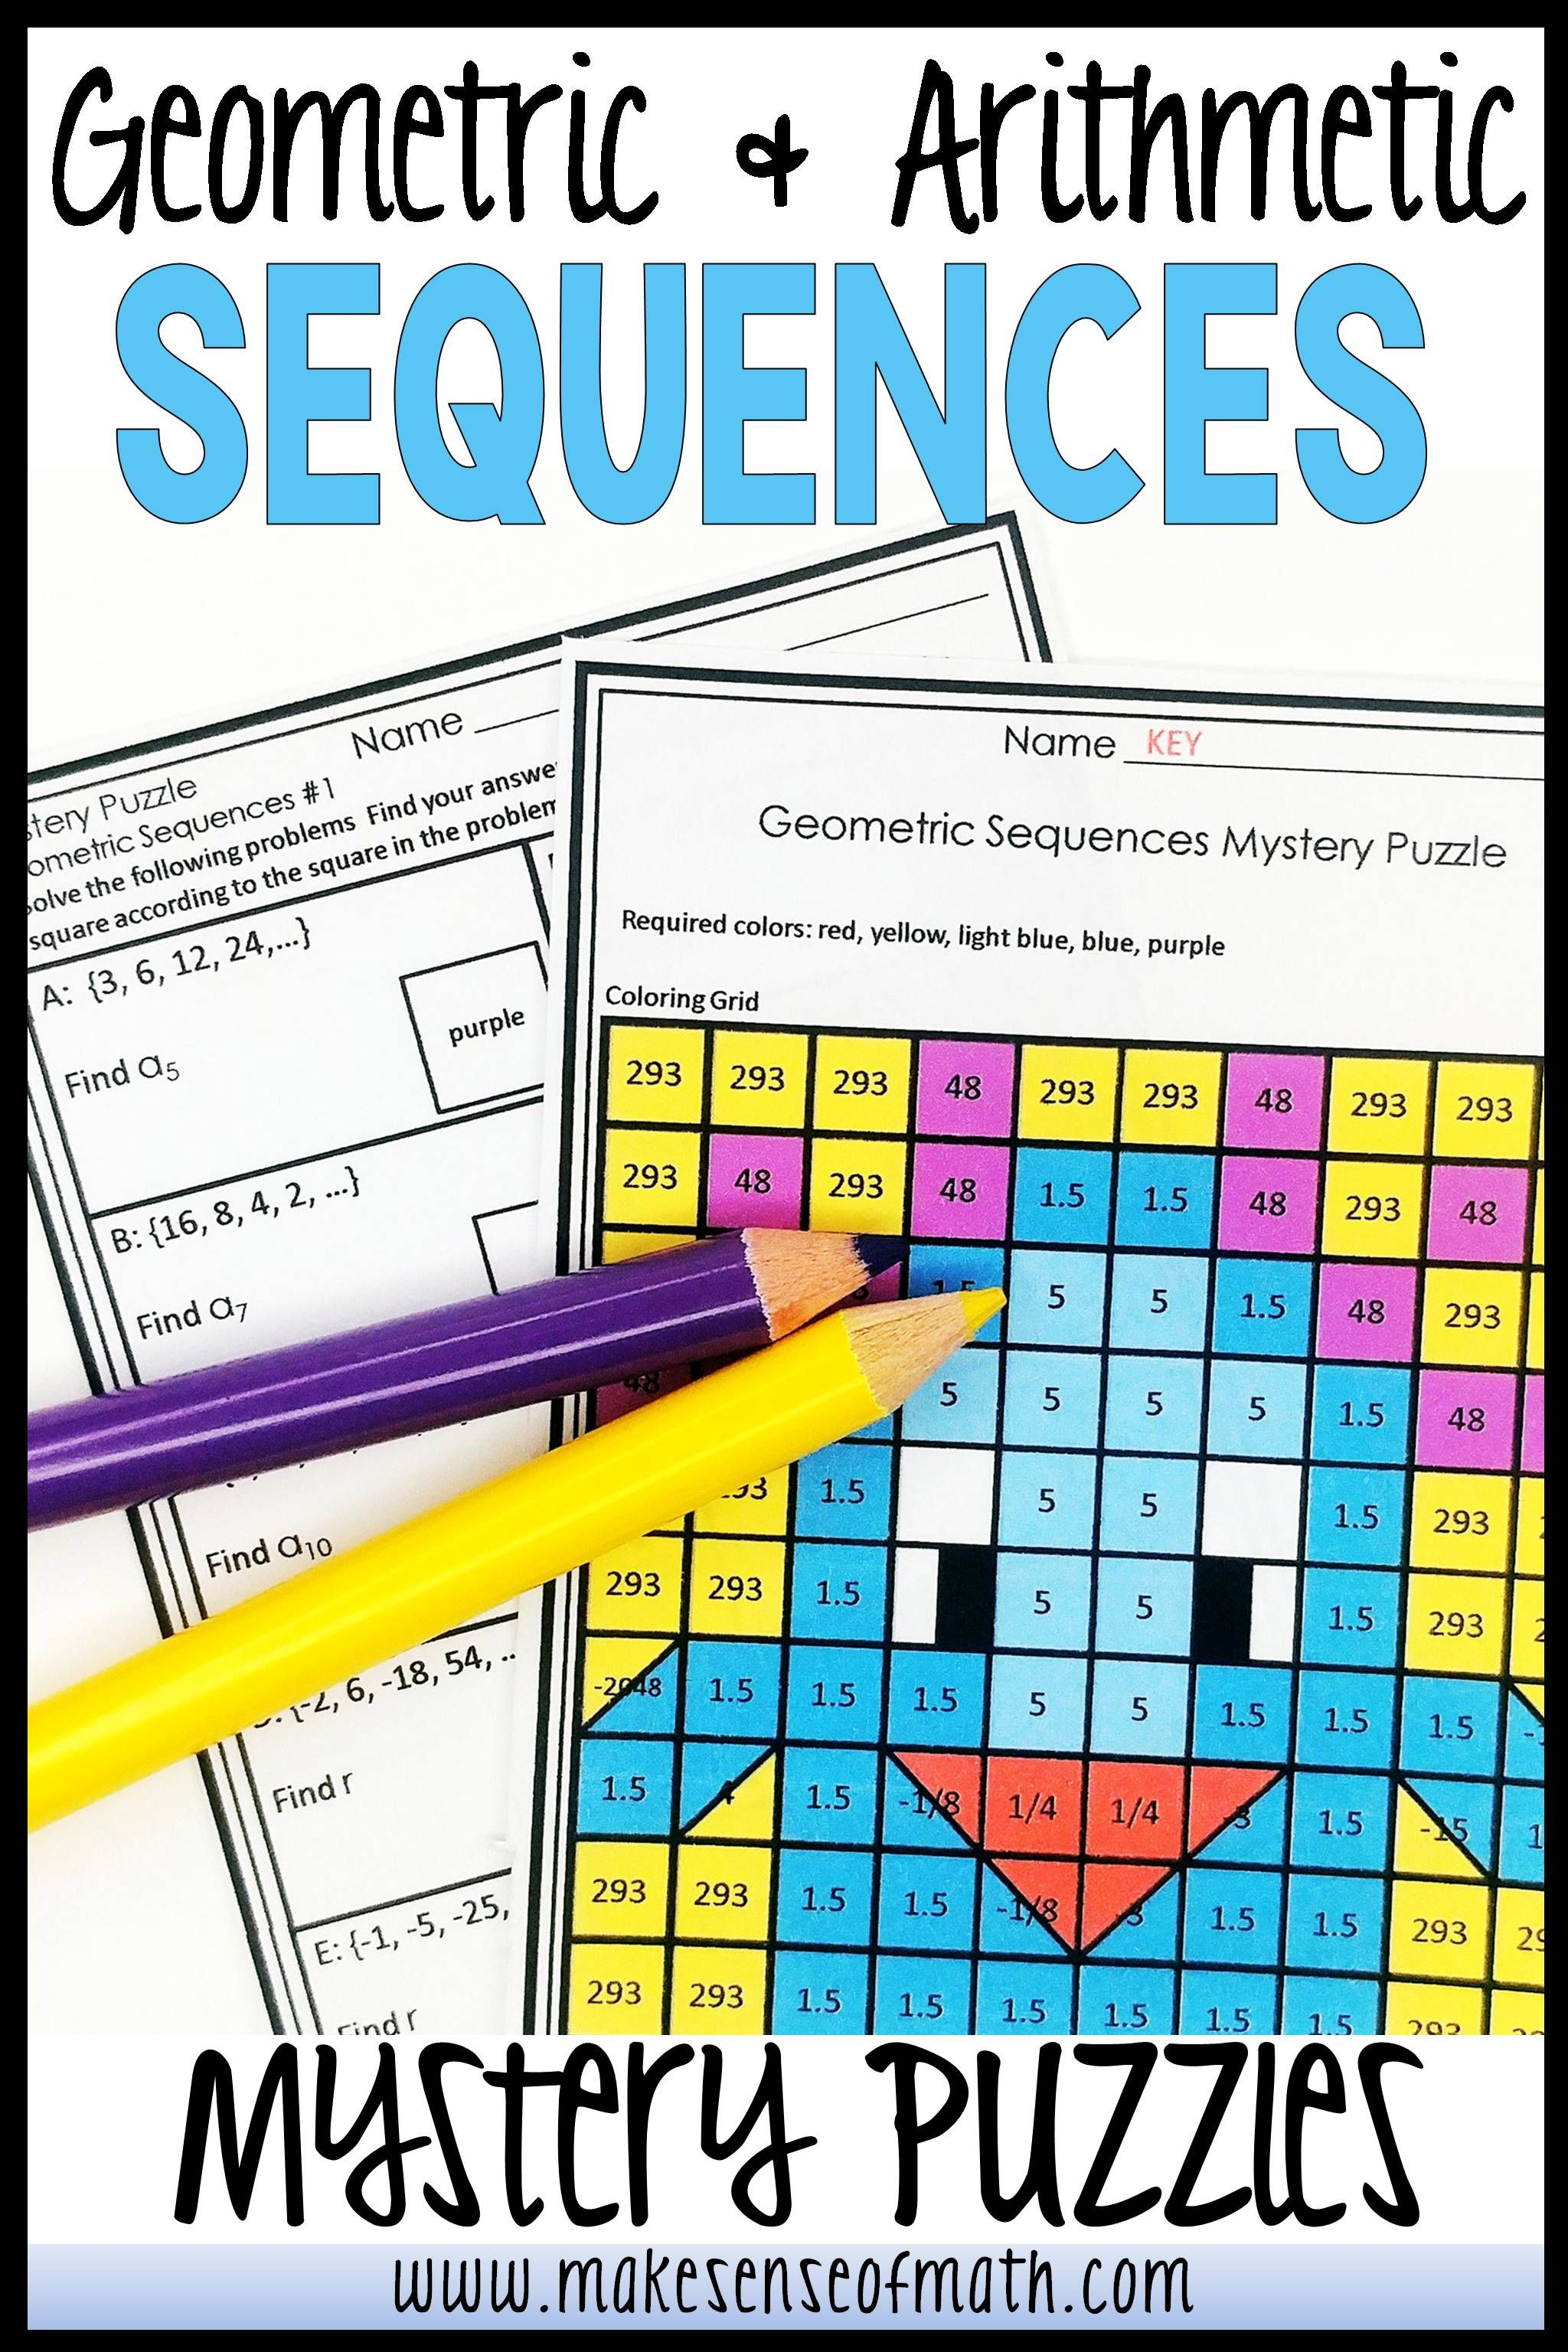 Geometric Sequences Activity And Arithmetic Sequences